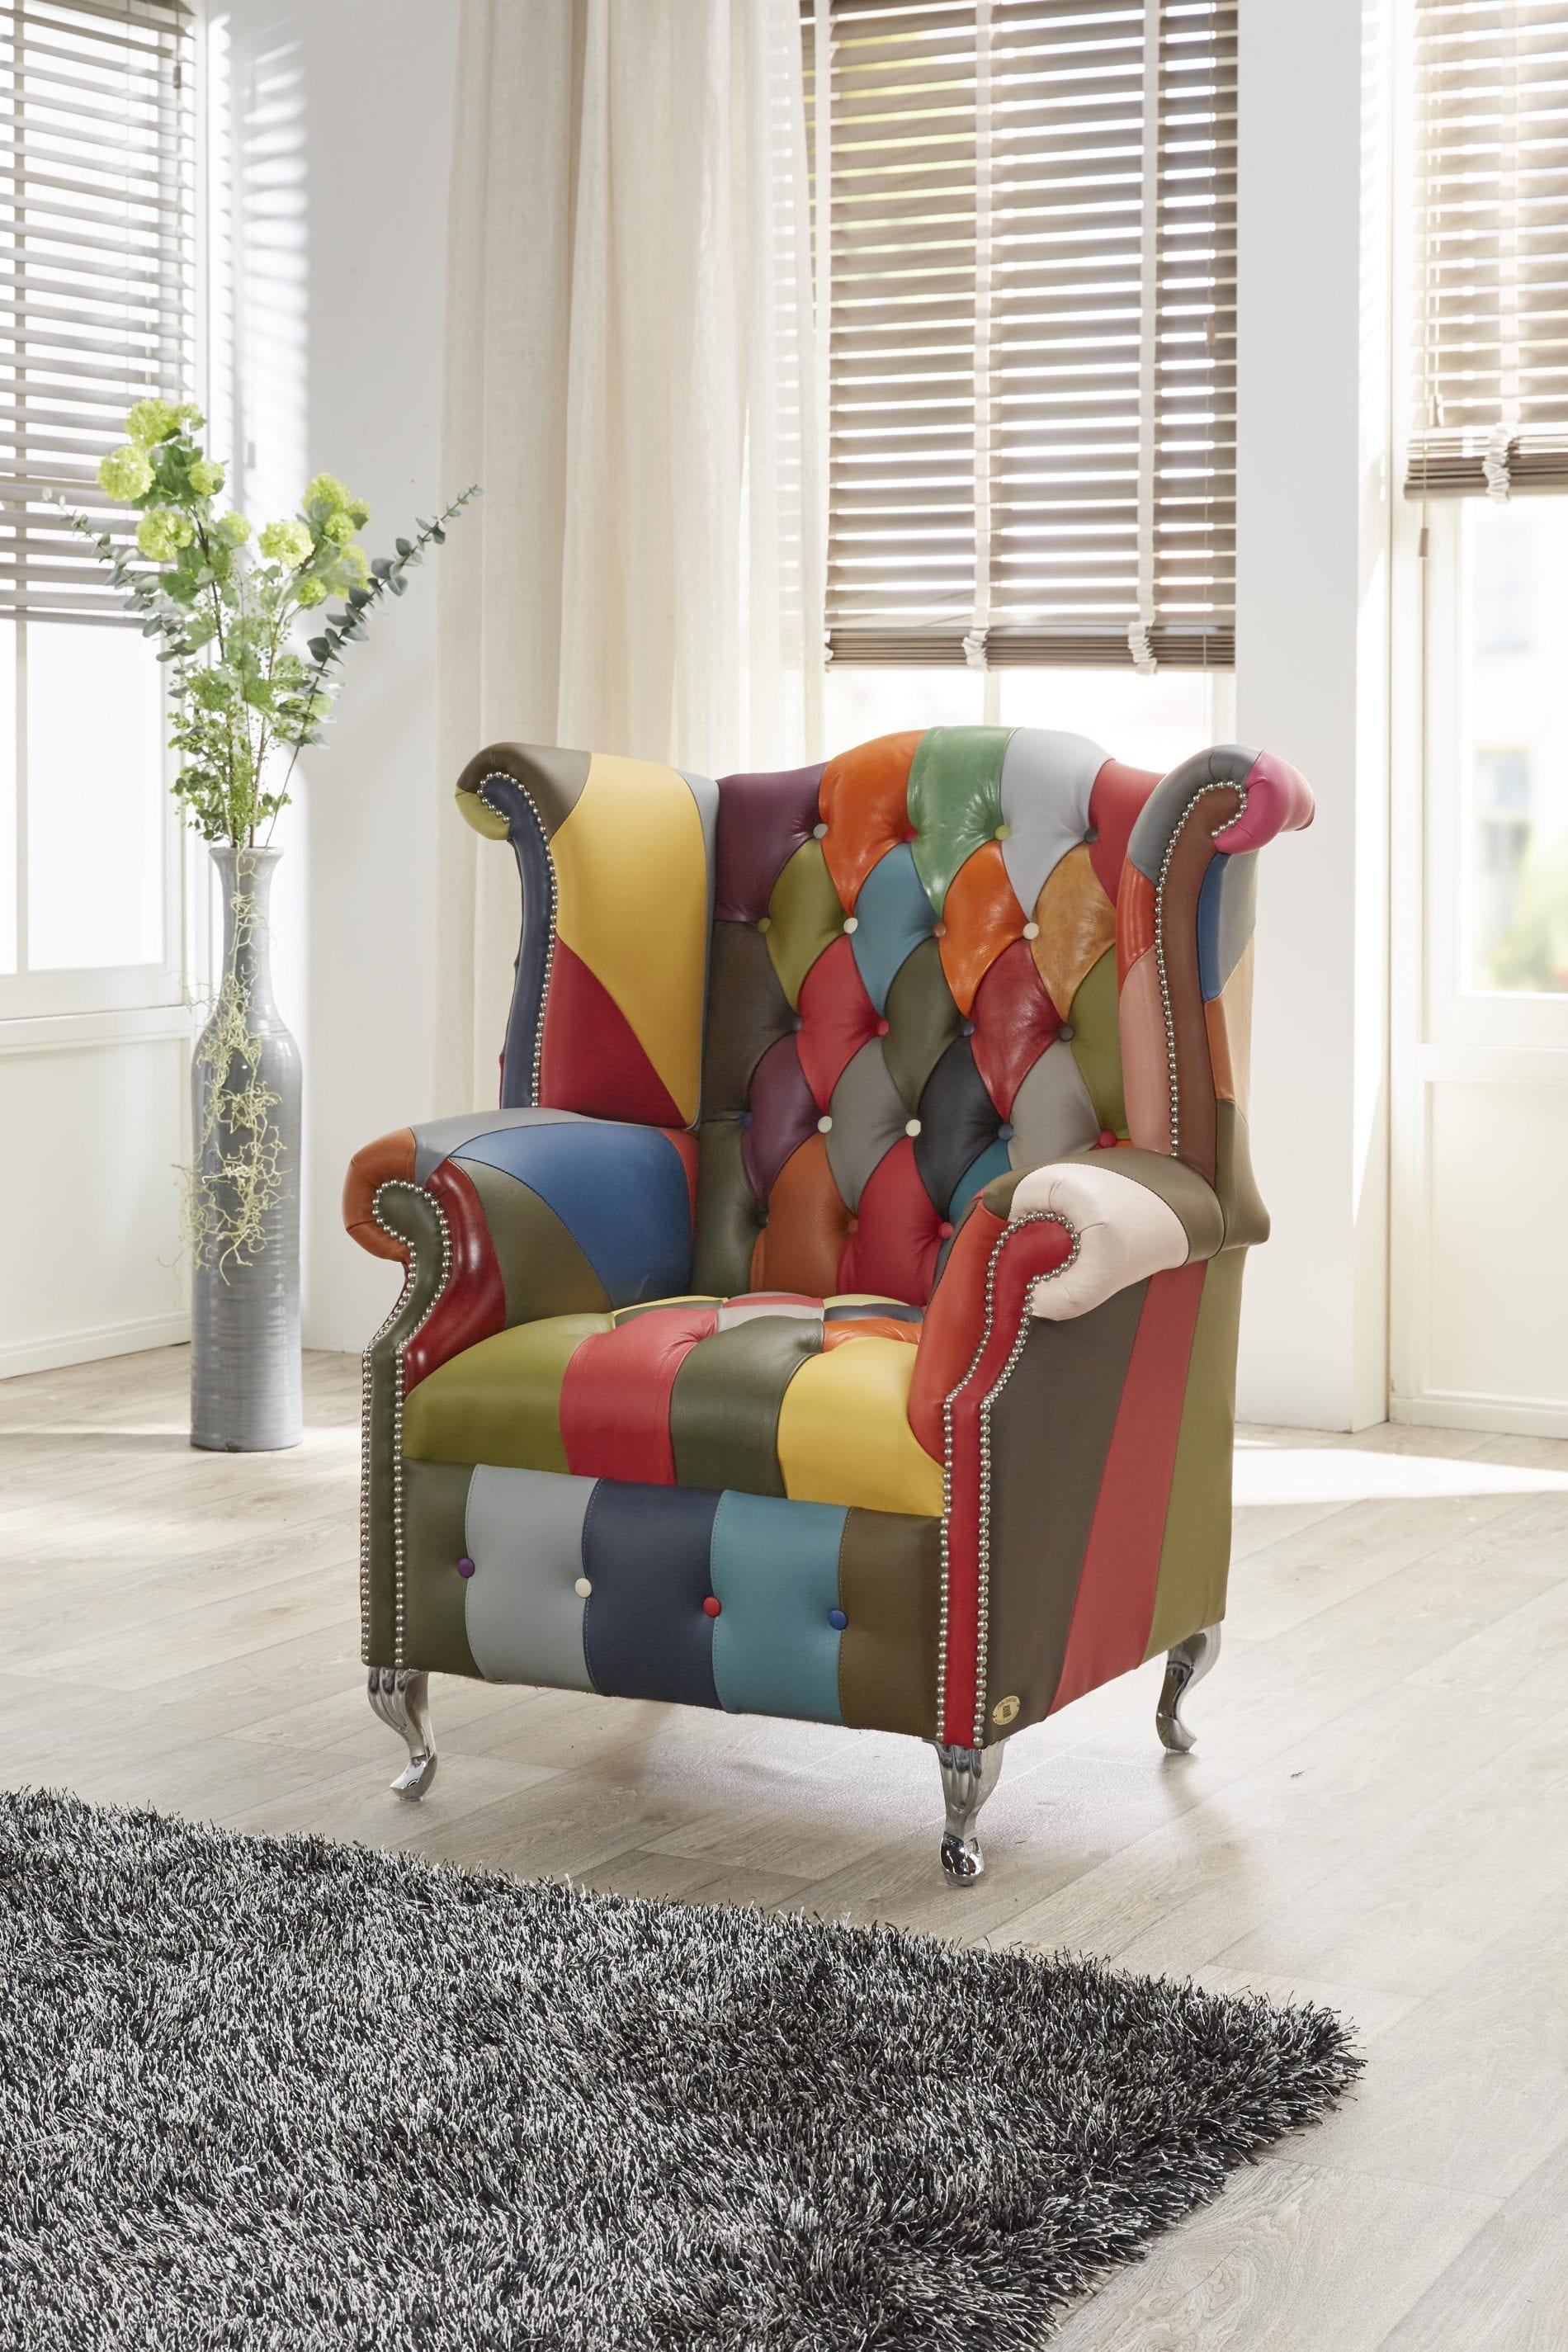 delta-chesterfield-eigentijds-multi-color-hb-scrolwing-button-seat